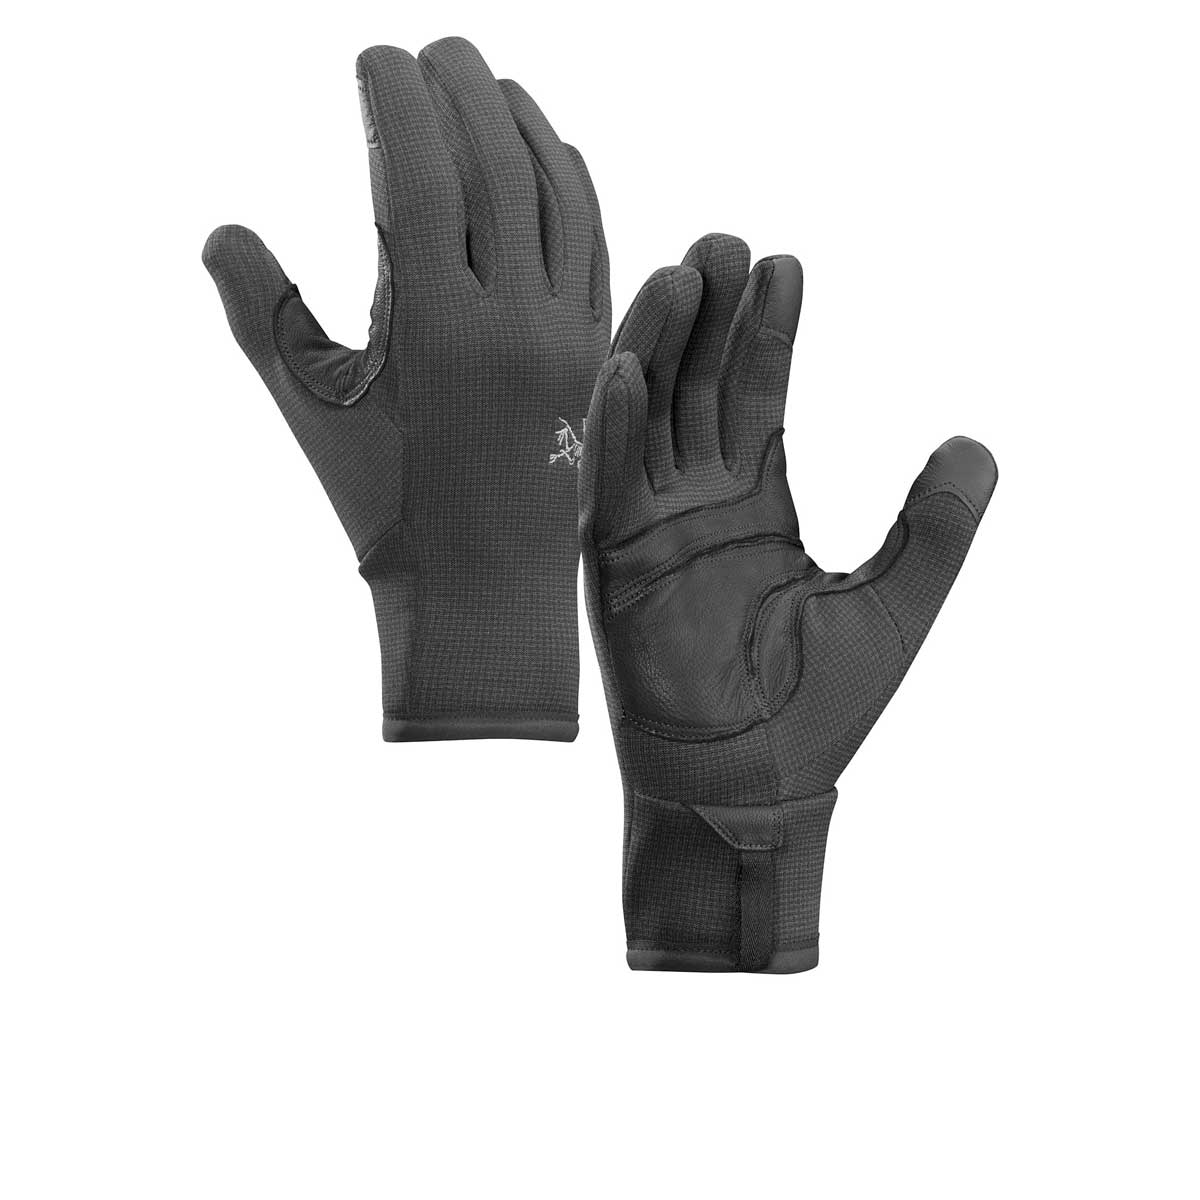 Arc'teryx Men's Rivet Glove in Black